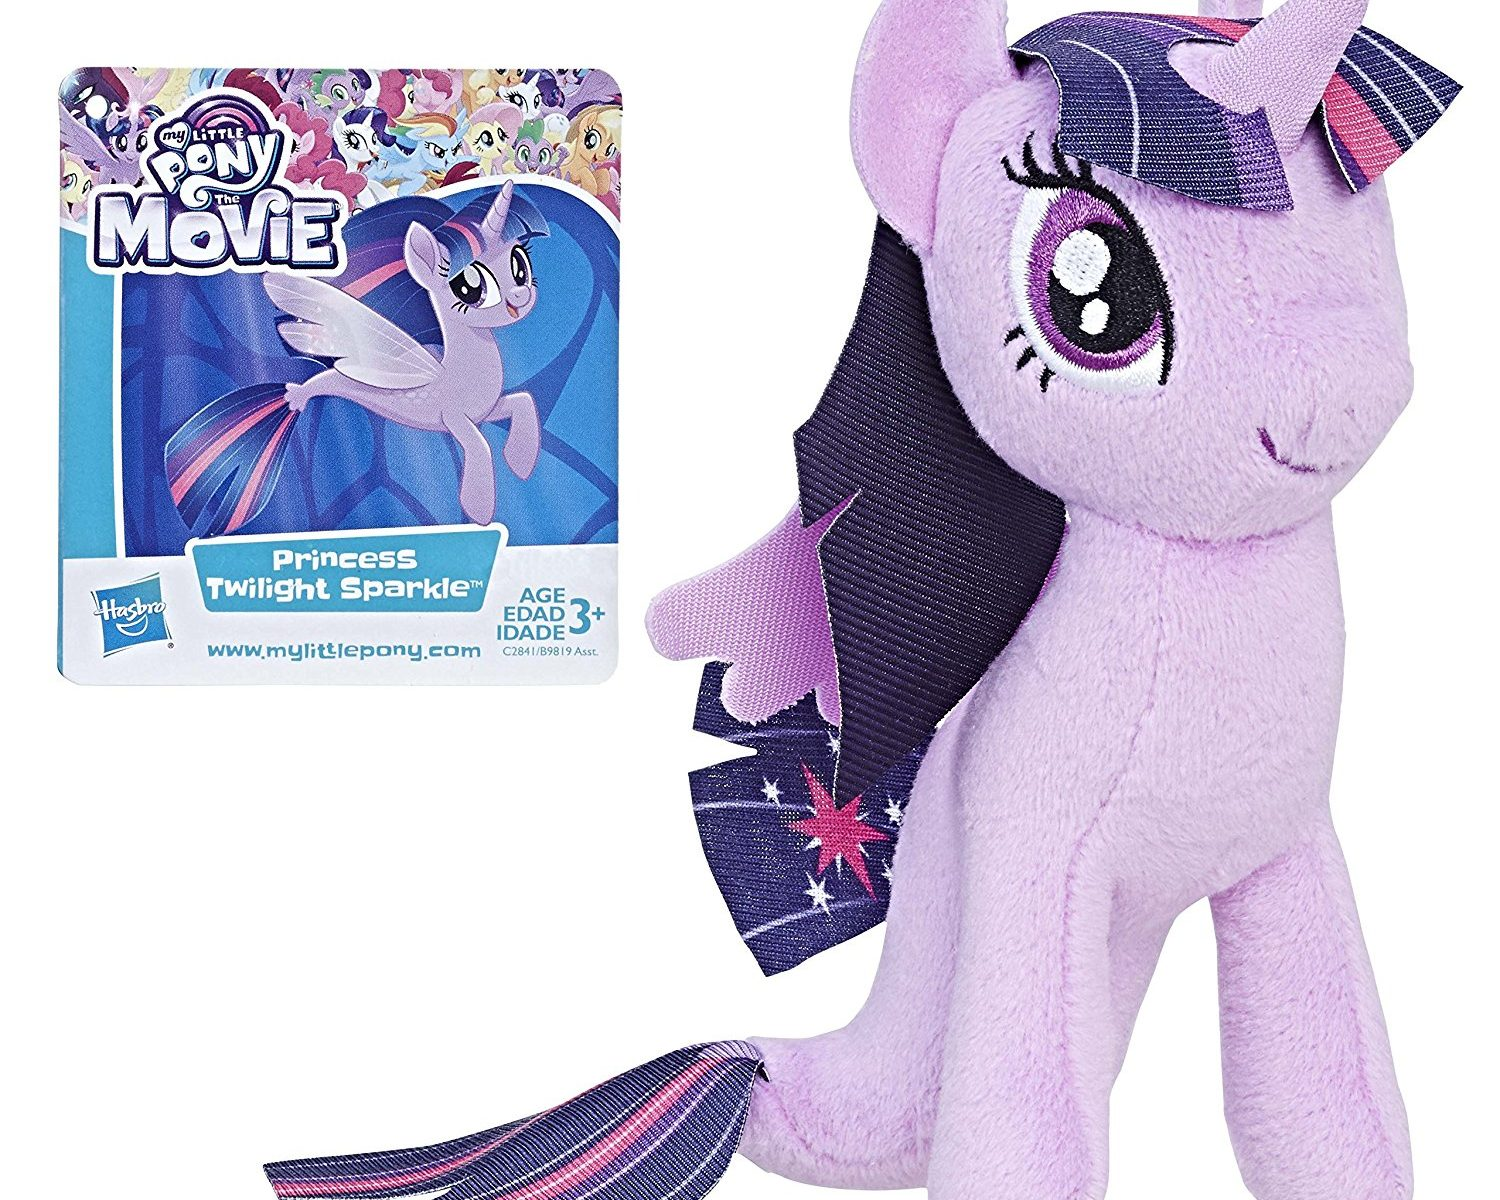 MLP: TM Movie Princess Twilight Sparkle Sea-Pony Plush Toy